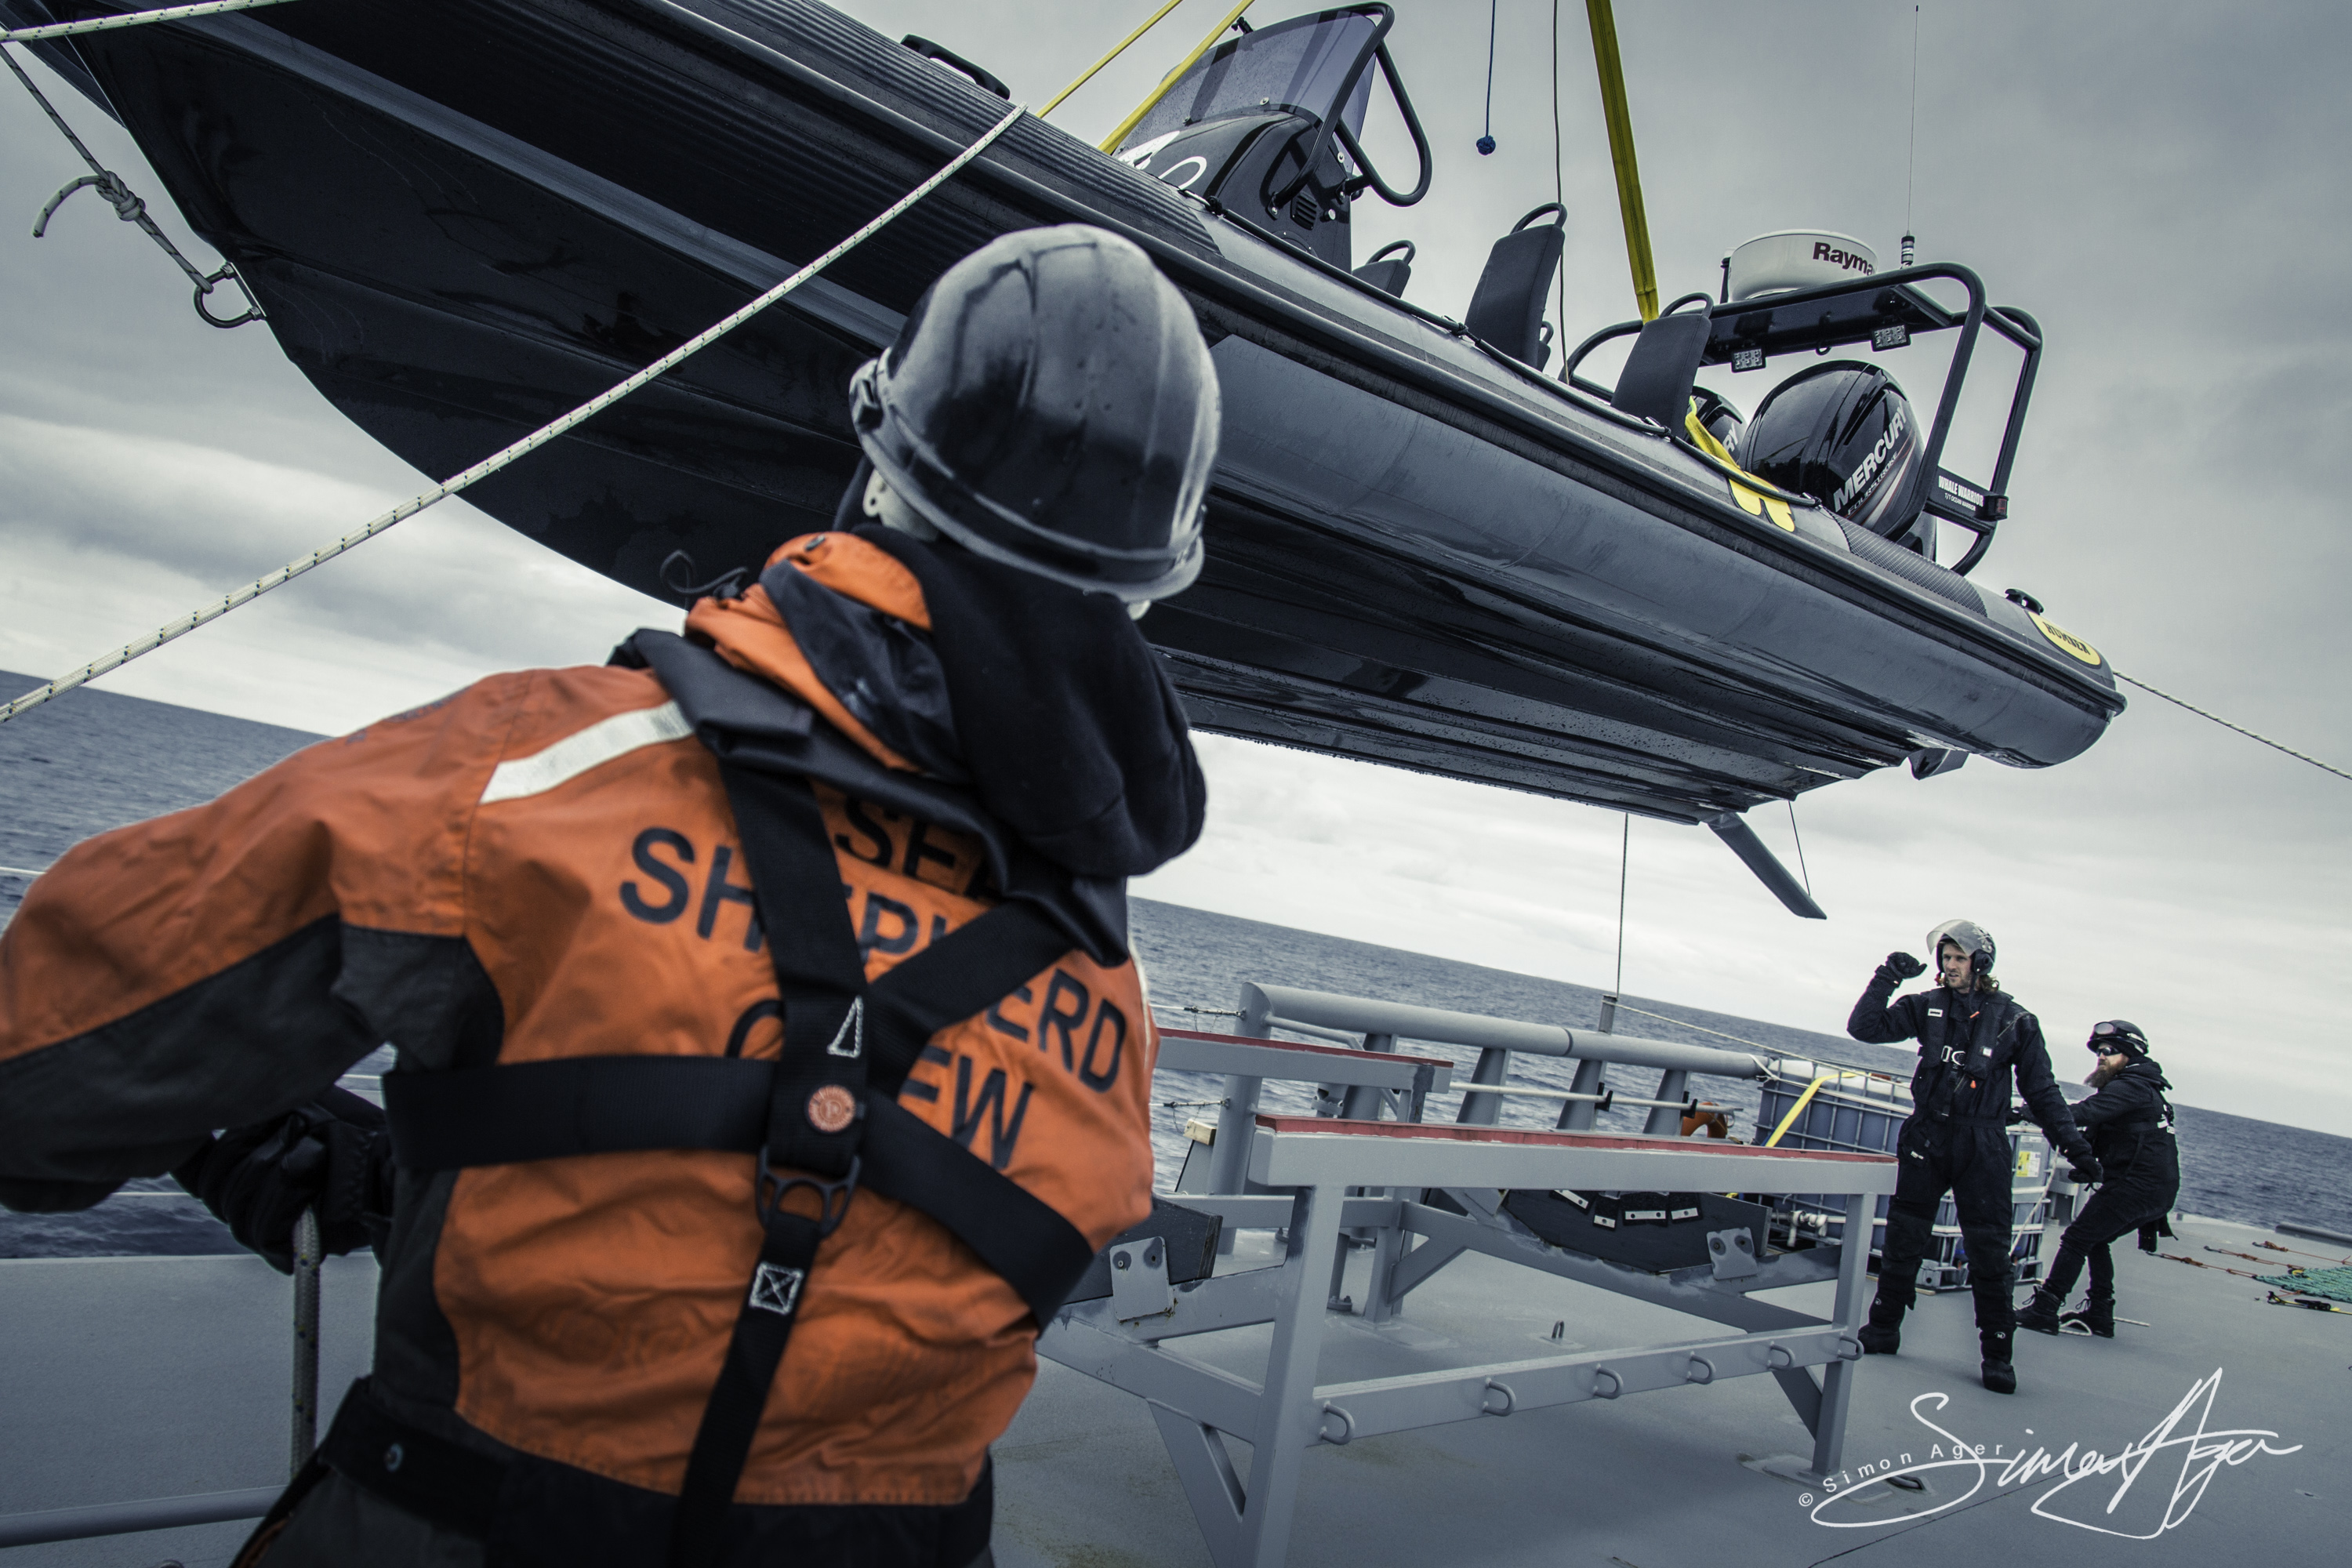 170112-SA-OW-Deck-crew-on-lines-retrieve-small-boat-006-4802